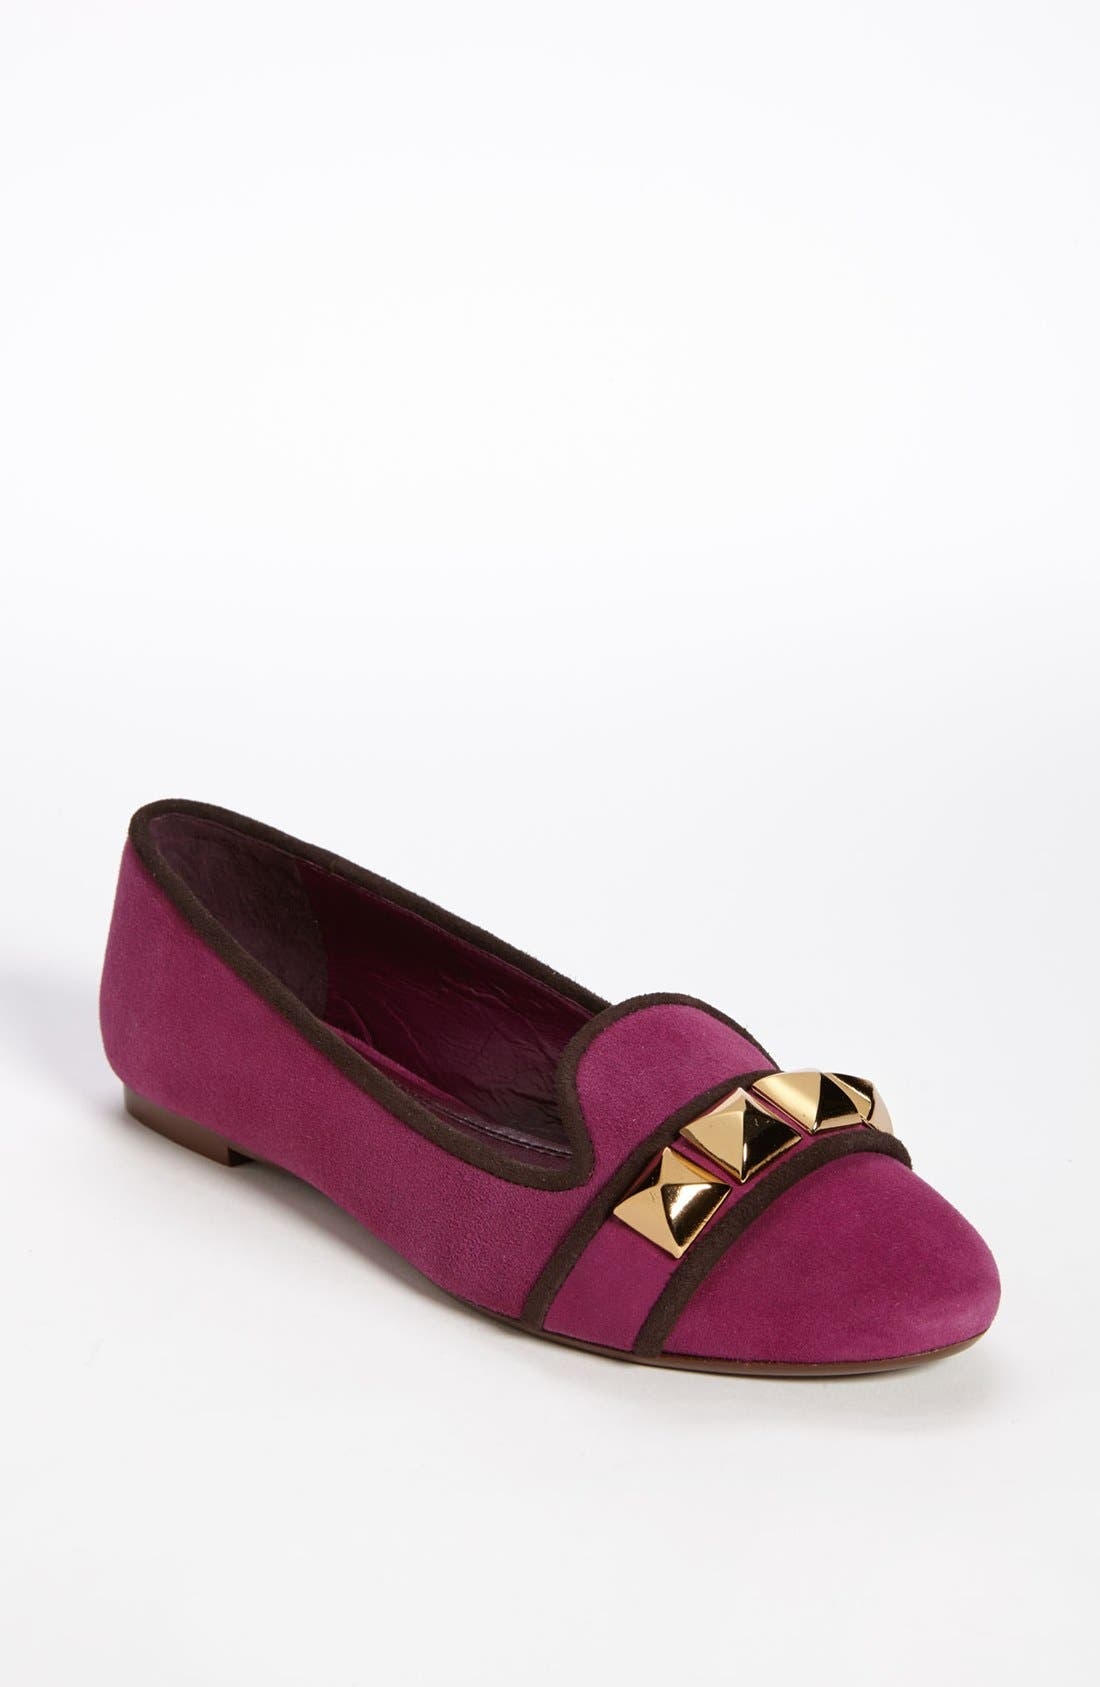 Alternate Image 1 Selected - Tory Burch 'Asher' Loafer Flat (Online Only Color)